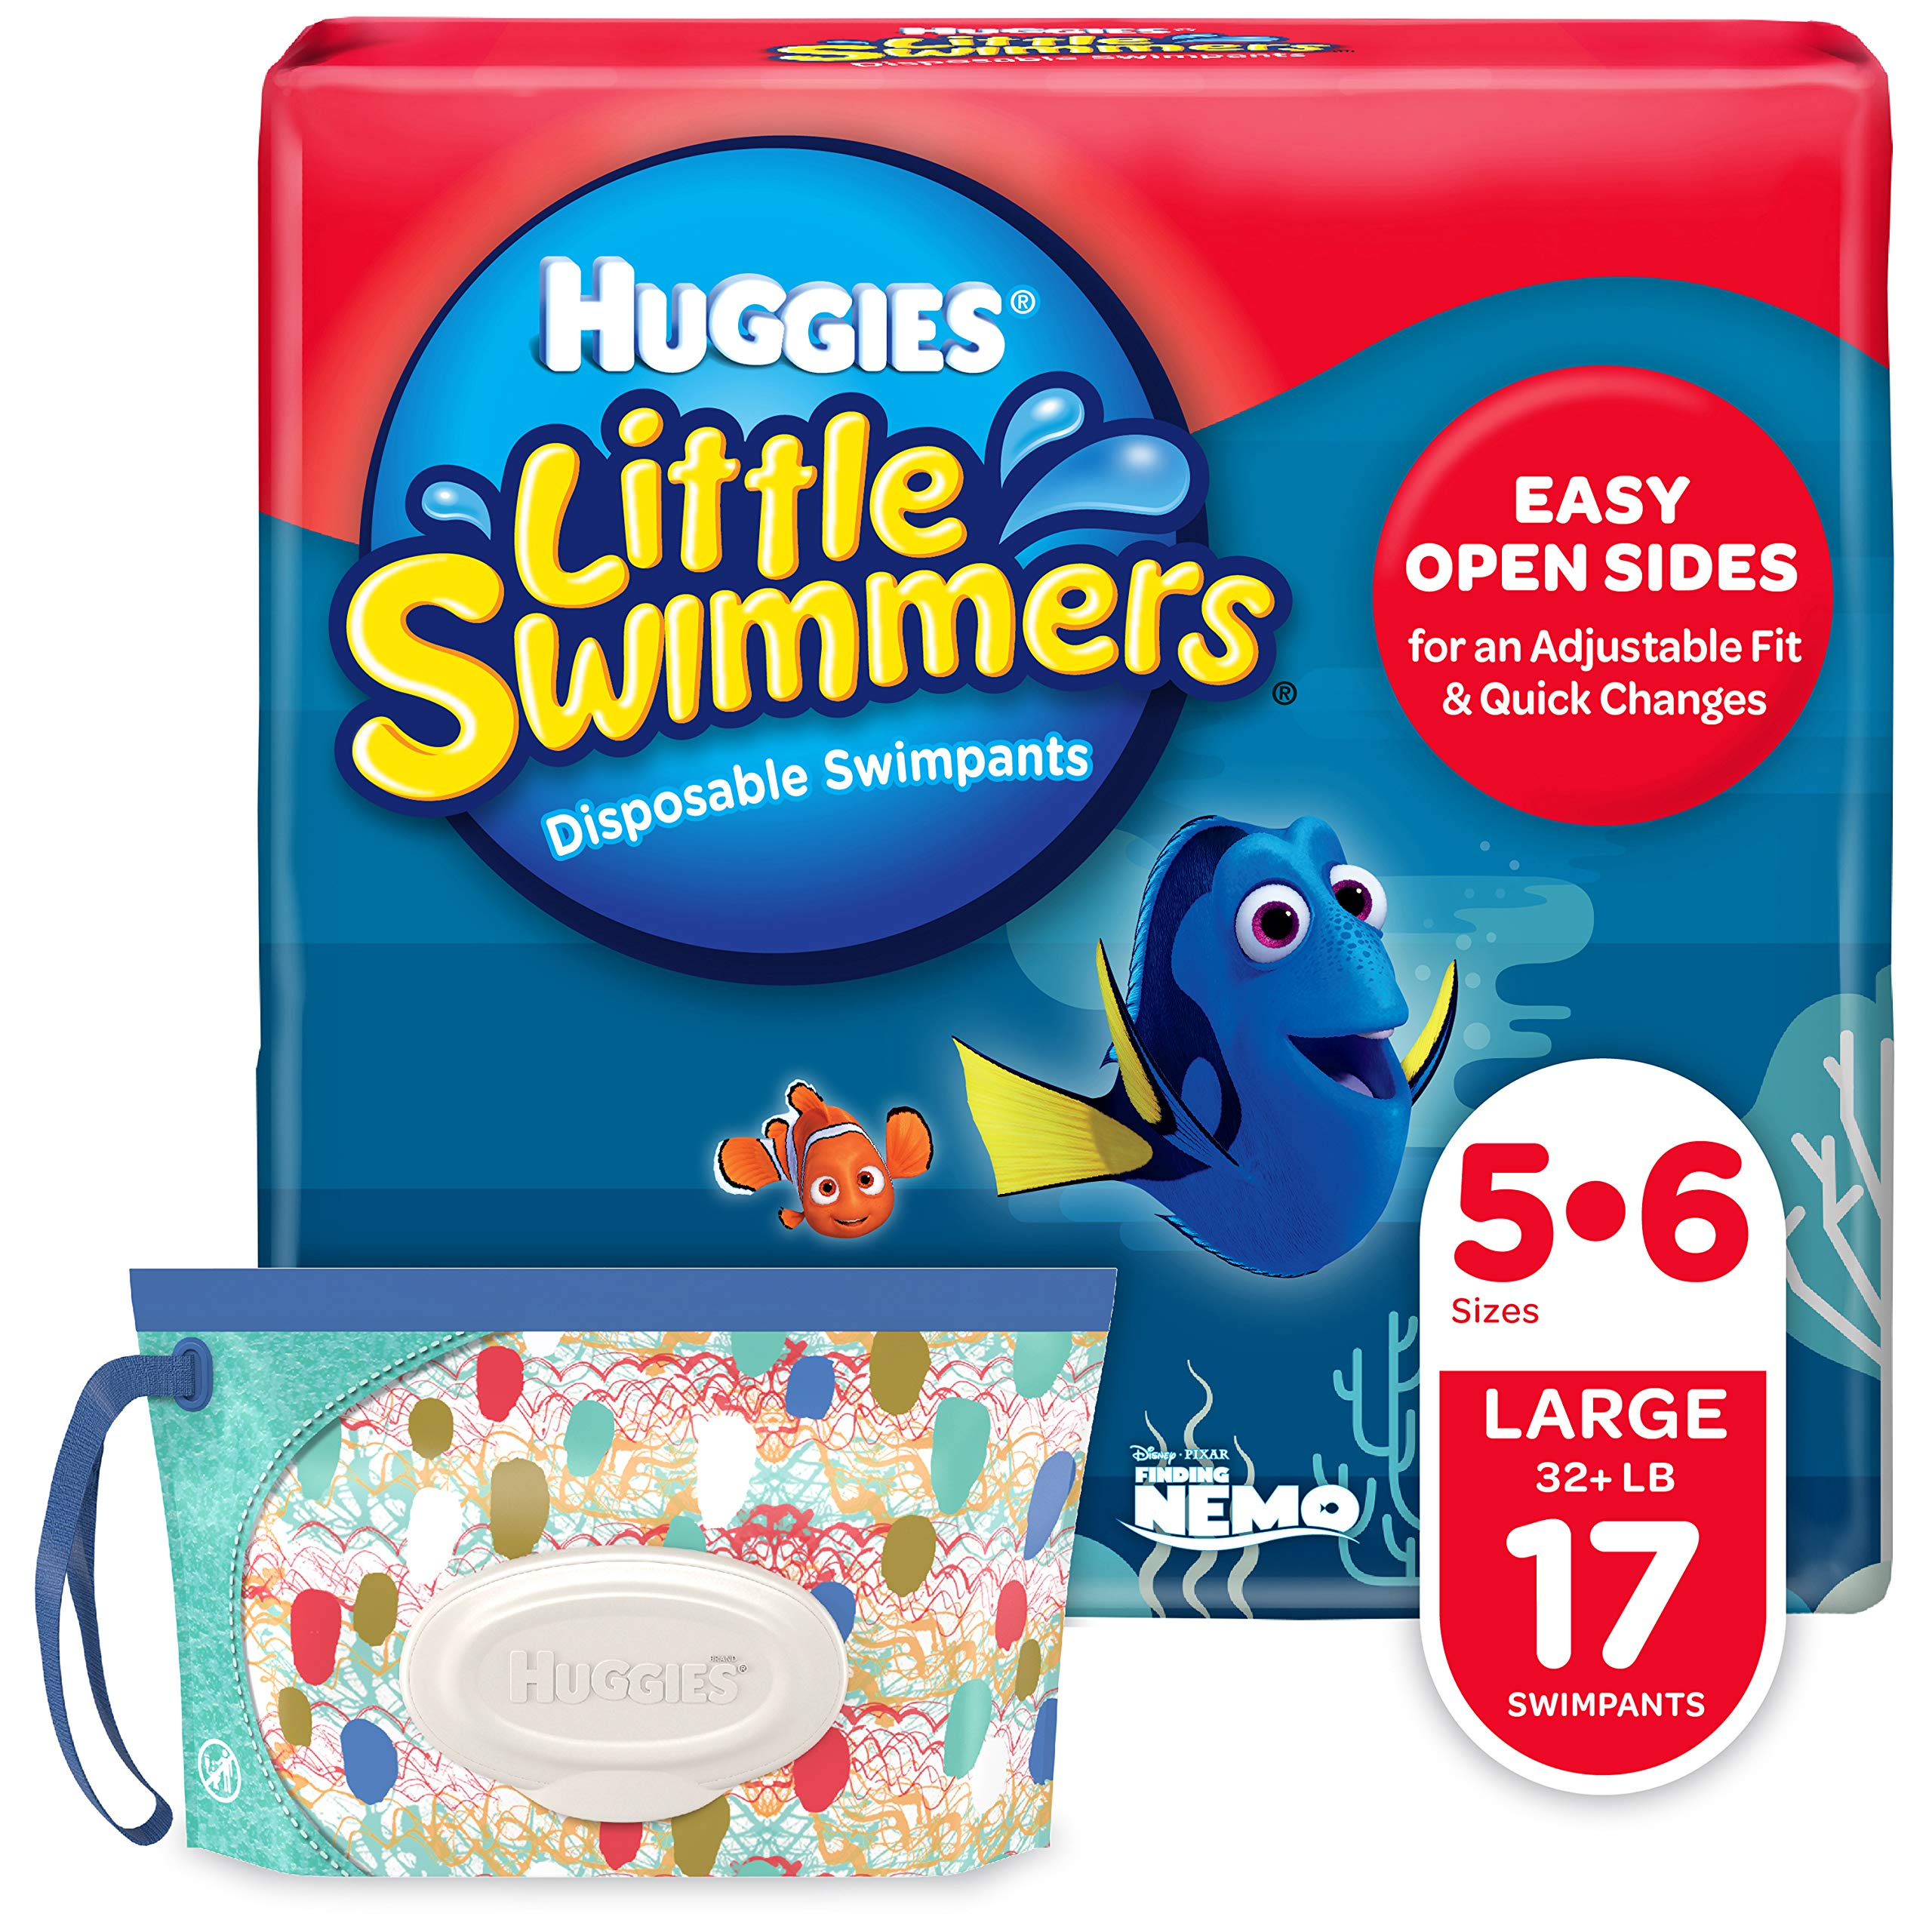 Huggies Little Swimmers Disposable Swim Diapers, Swimpants, Size 5-6 Large (Over 32 lb.), 17 Ct, with Huggies Wipes Clutch 'N' Clean Bonus Pack (Packaging May Vary) by HUGGIES